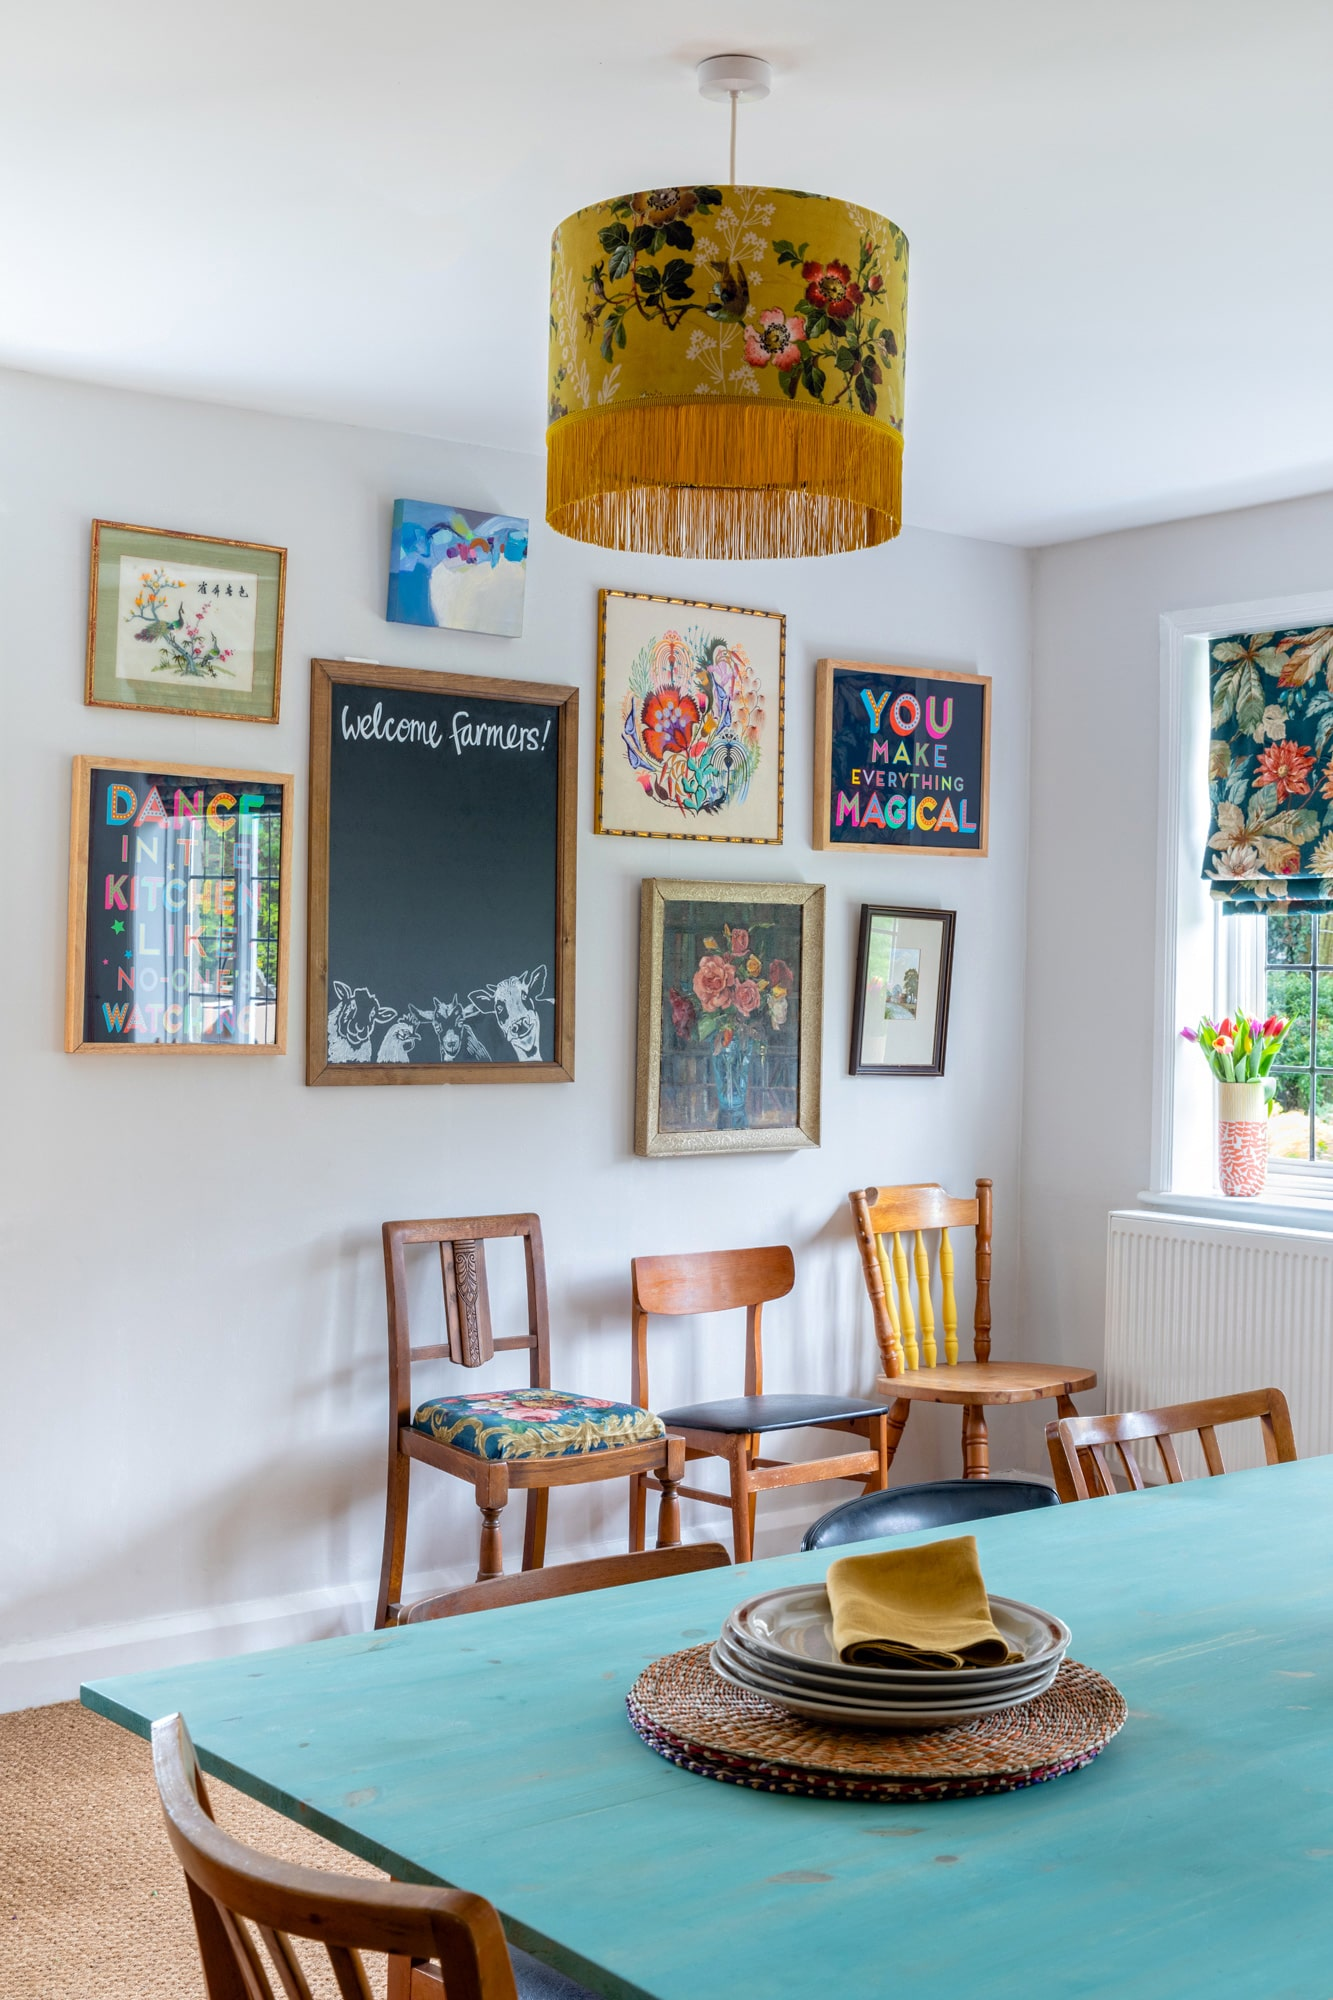 Dining room in a farm house: art on the wall, yellow ceiling lamp, chairs next to the wall and wooden table with plates